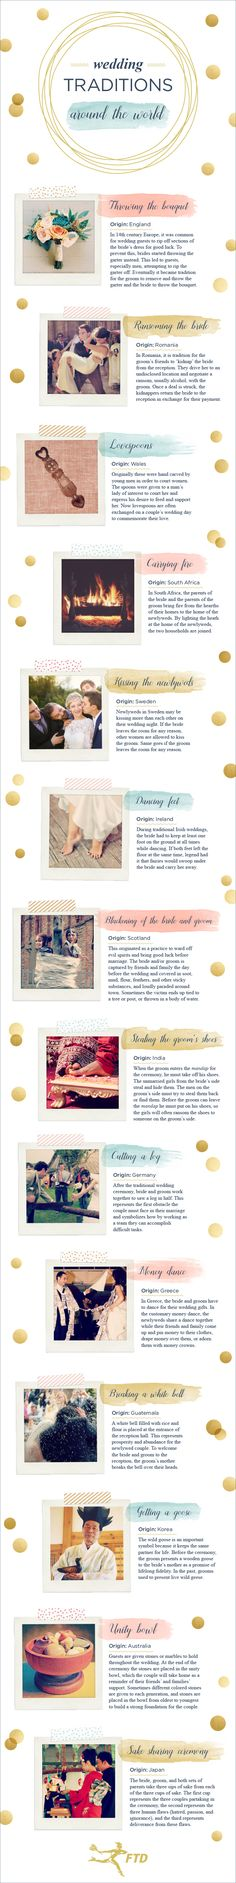 There are countless fun and quirky wedding traditions from around the world, so we created this fun infographic